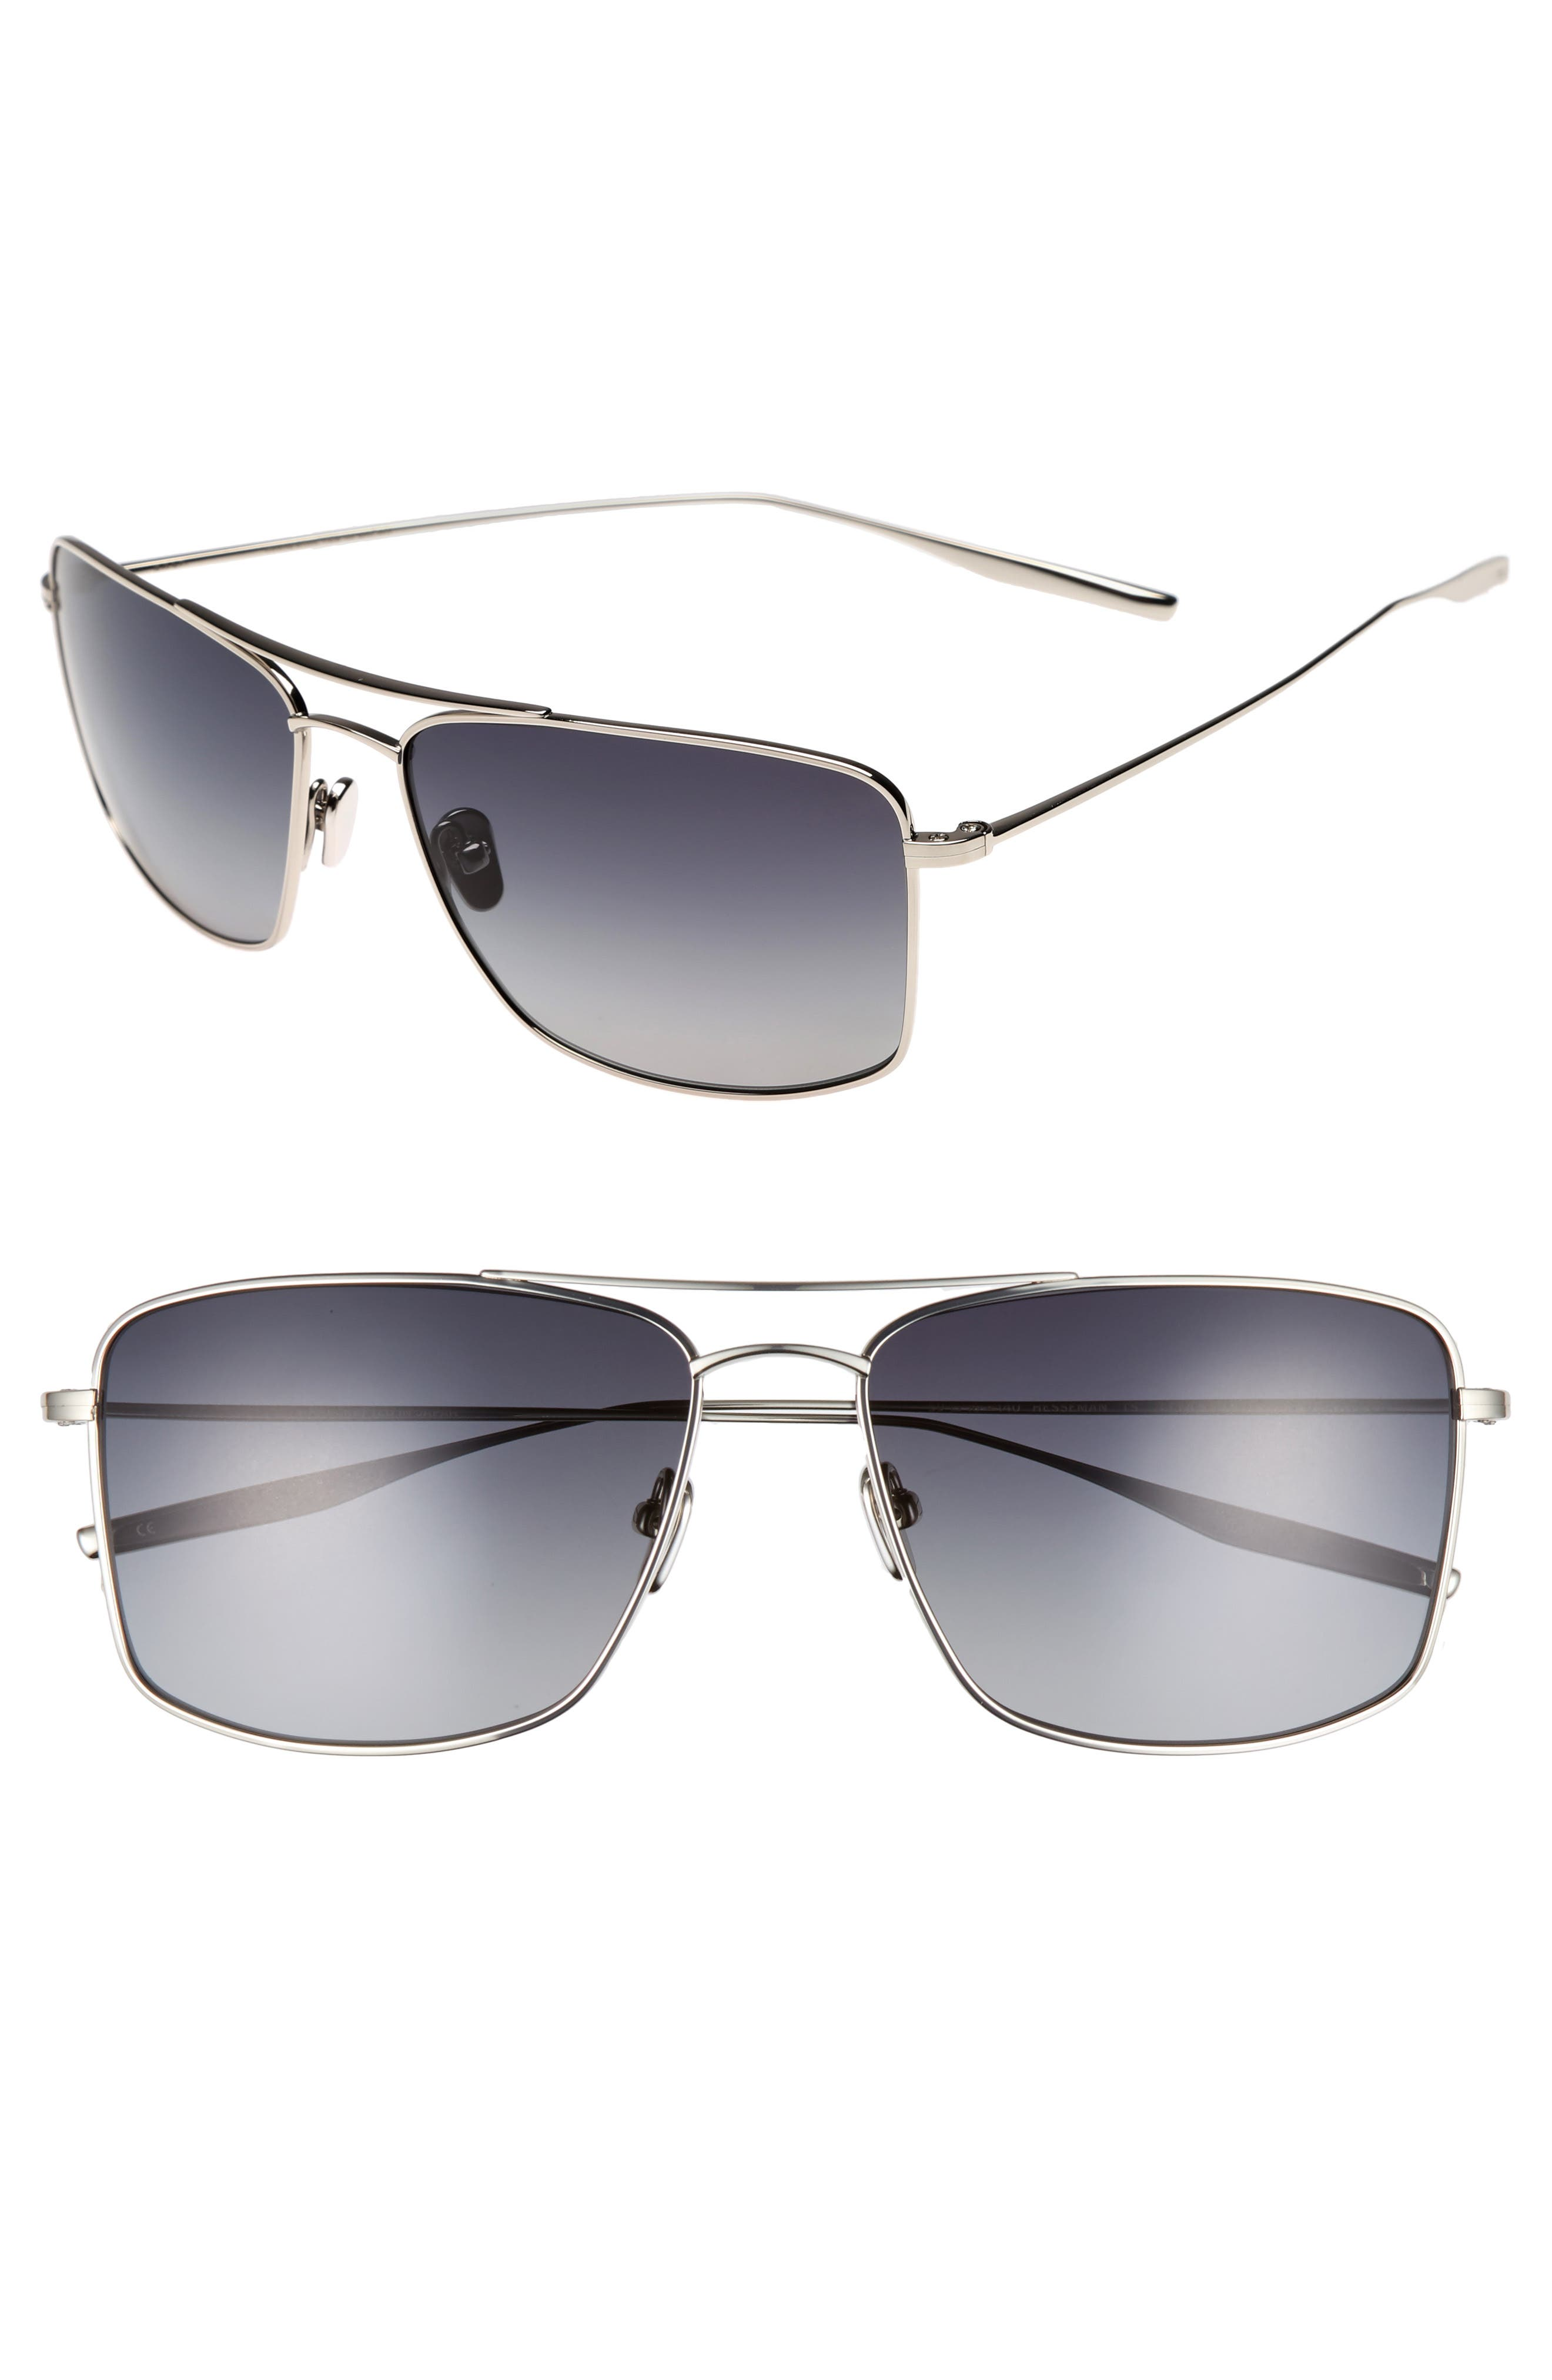 Hesseman 59mm Polarized Sunglasses,                             Main thumbnail 1, color,                             TRADITIONAL SILVER